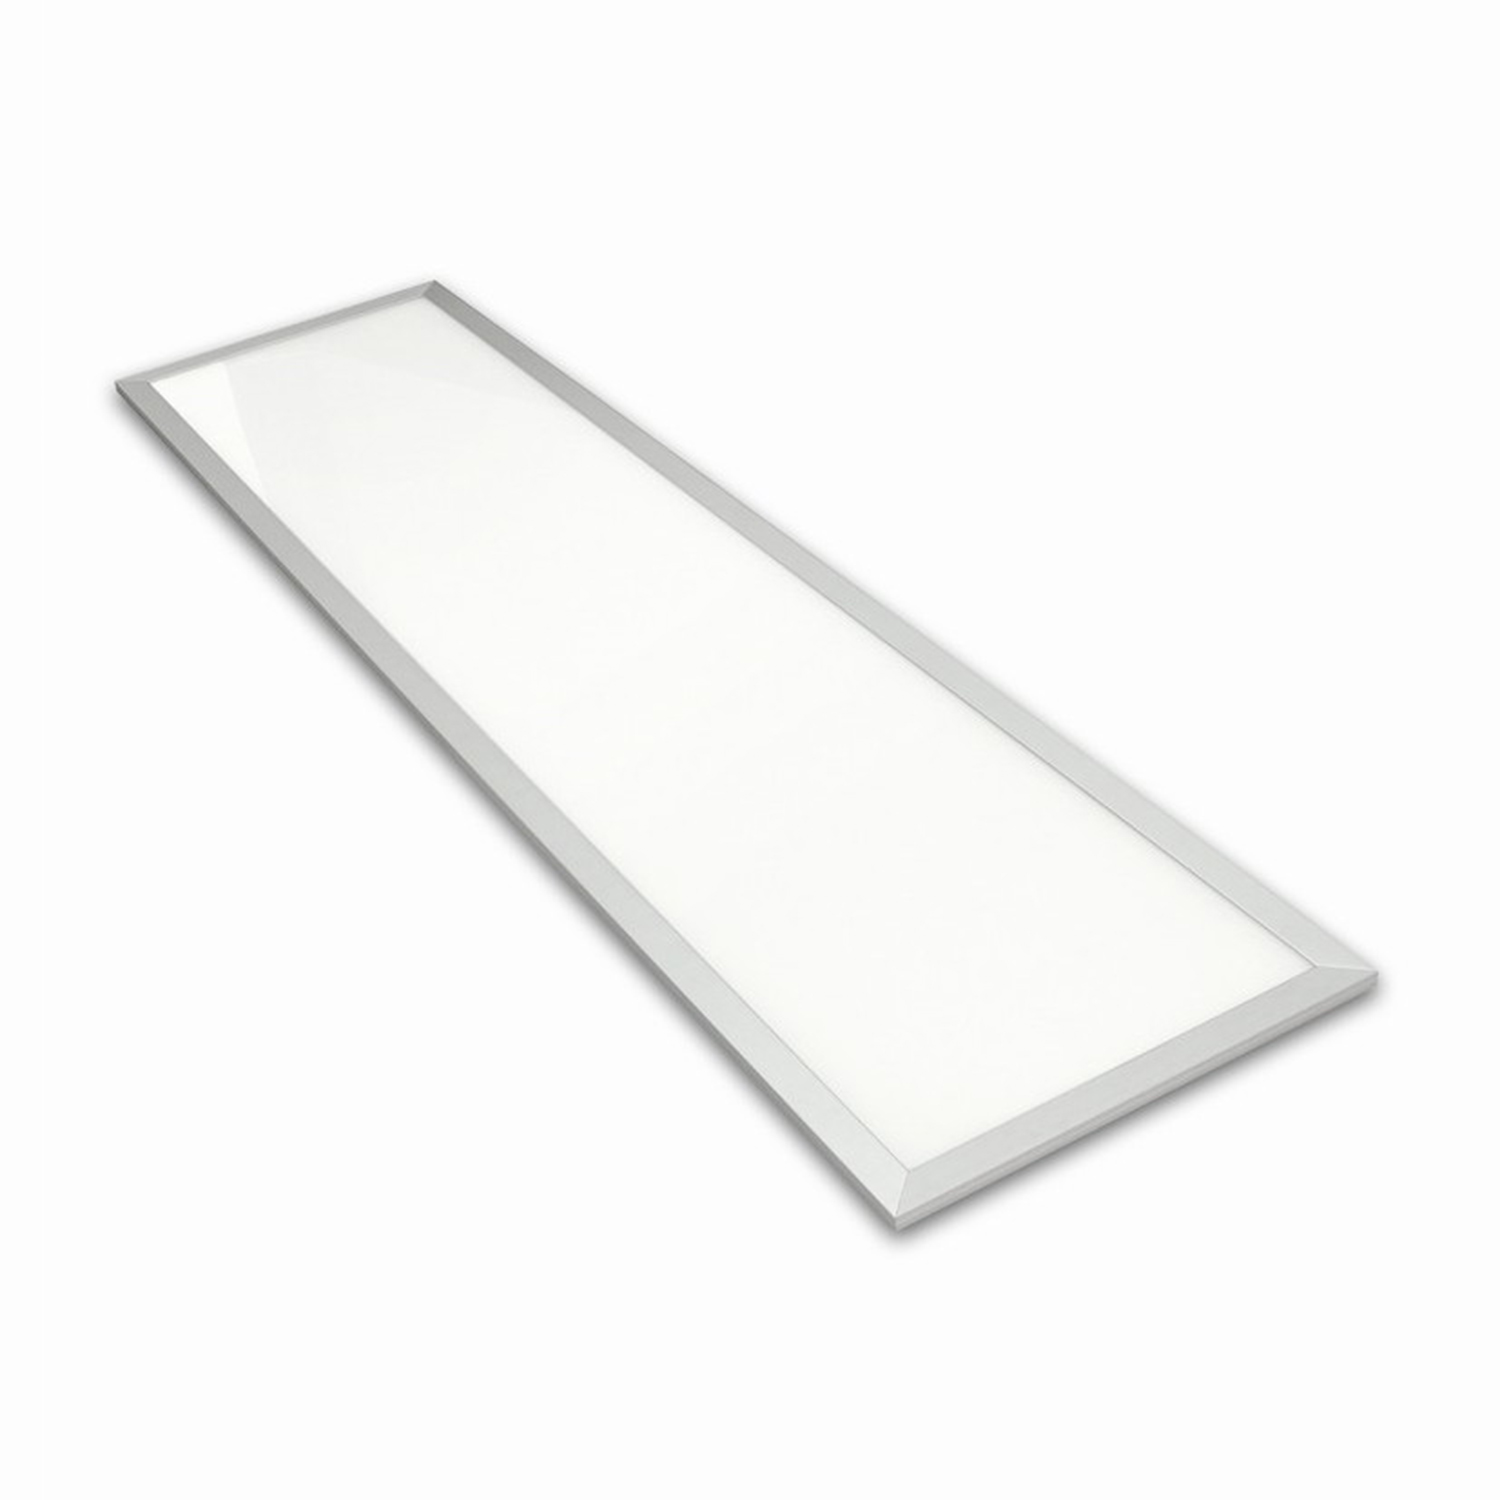 Panel Light 50w Led Panel Light Fixture 1ft X 4ft Socal Led Lighting